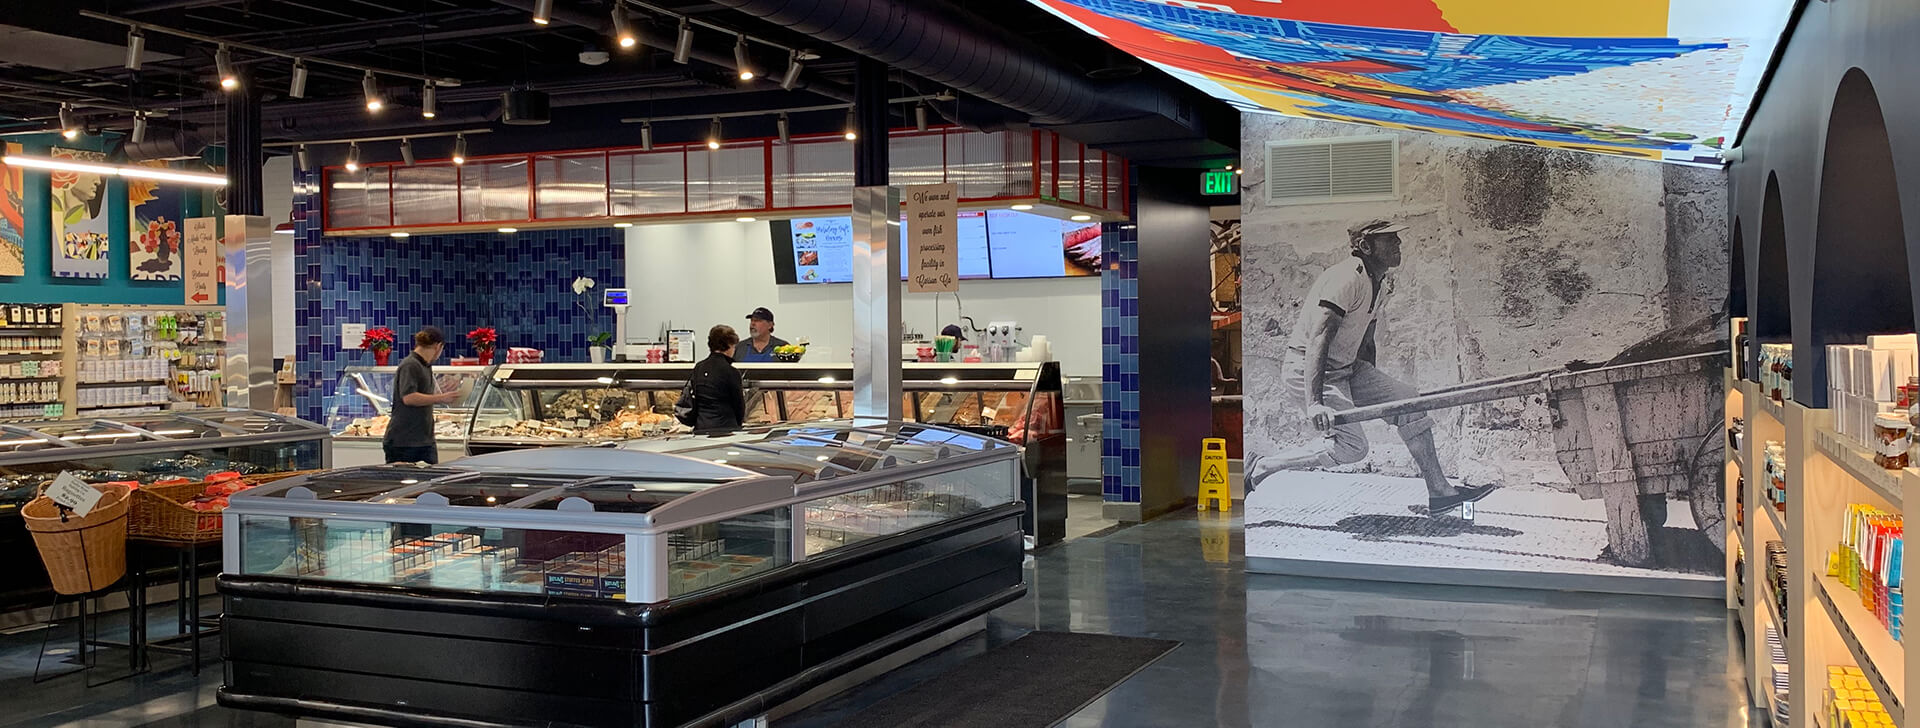 Seafood market interior with seafood cooler cases and bold interior design featuring large vibrant lighted signs, black and white photography, brightly painted walls, woven baskets and dramatic two-tone blue tiles.